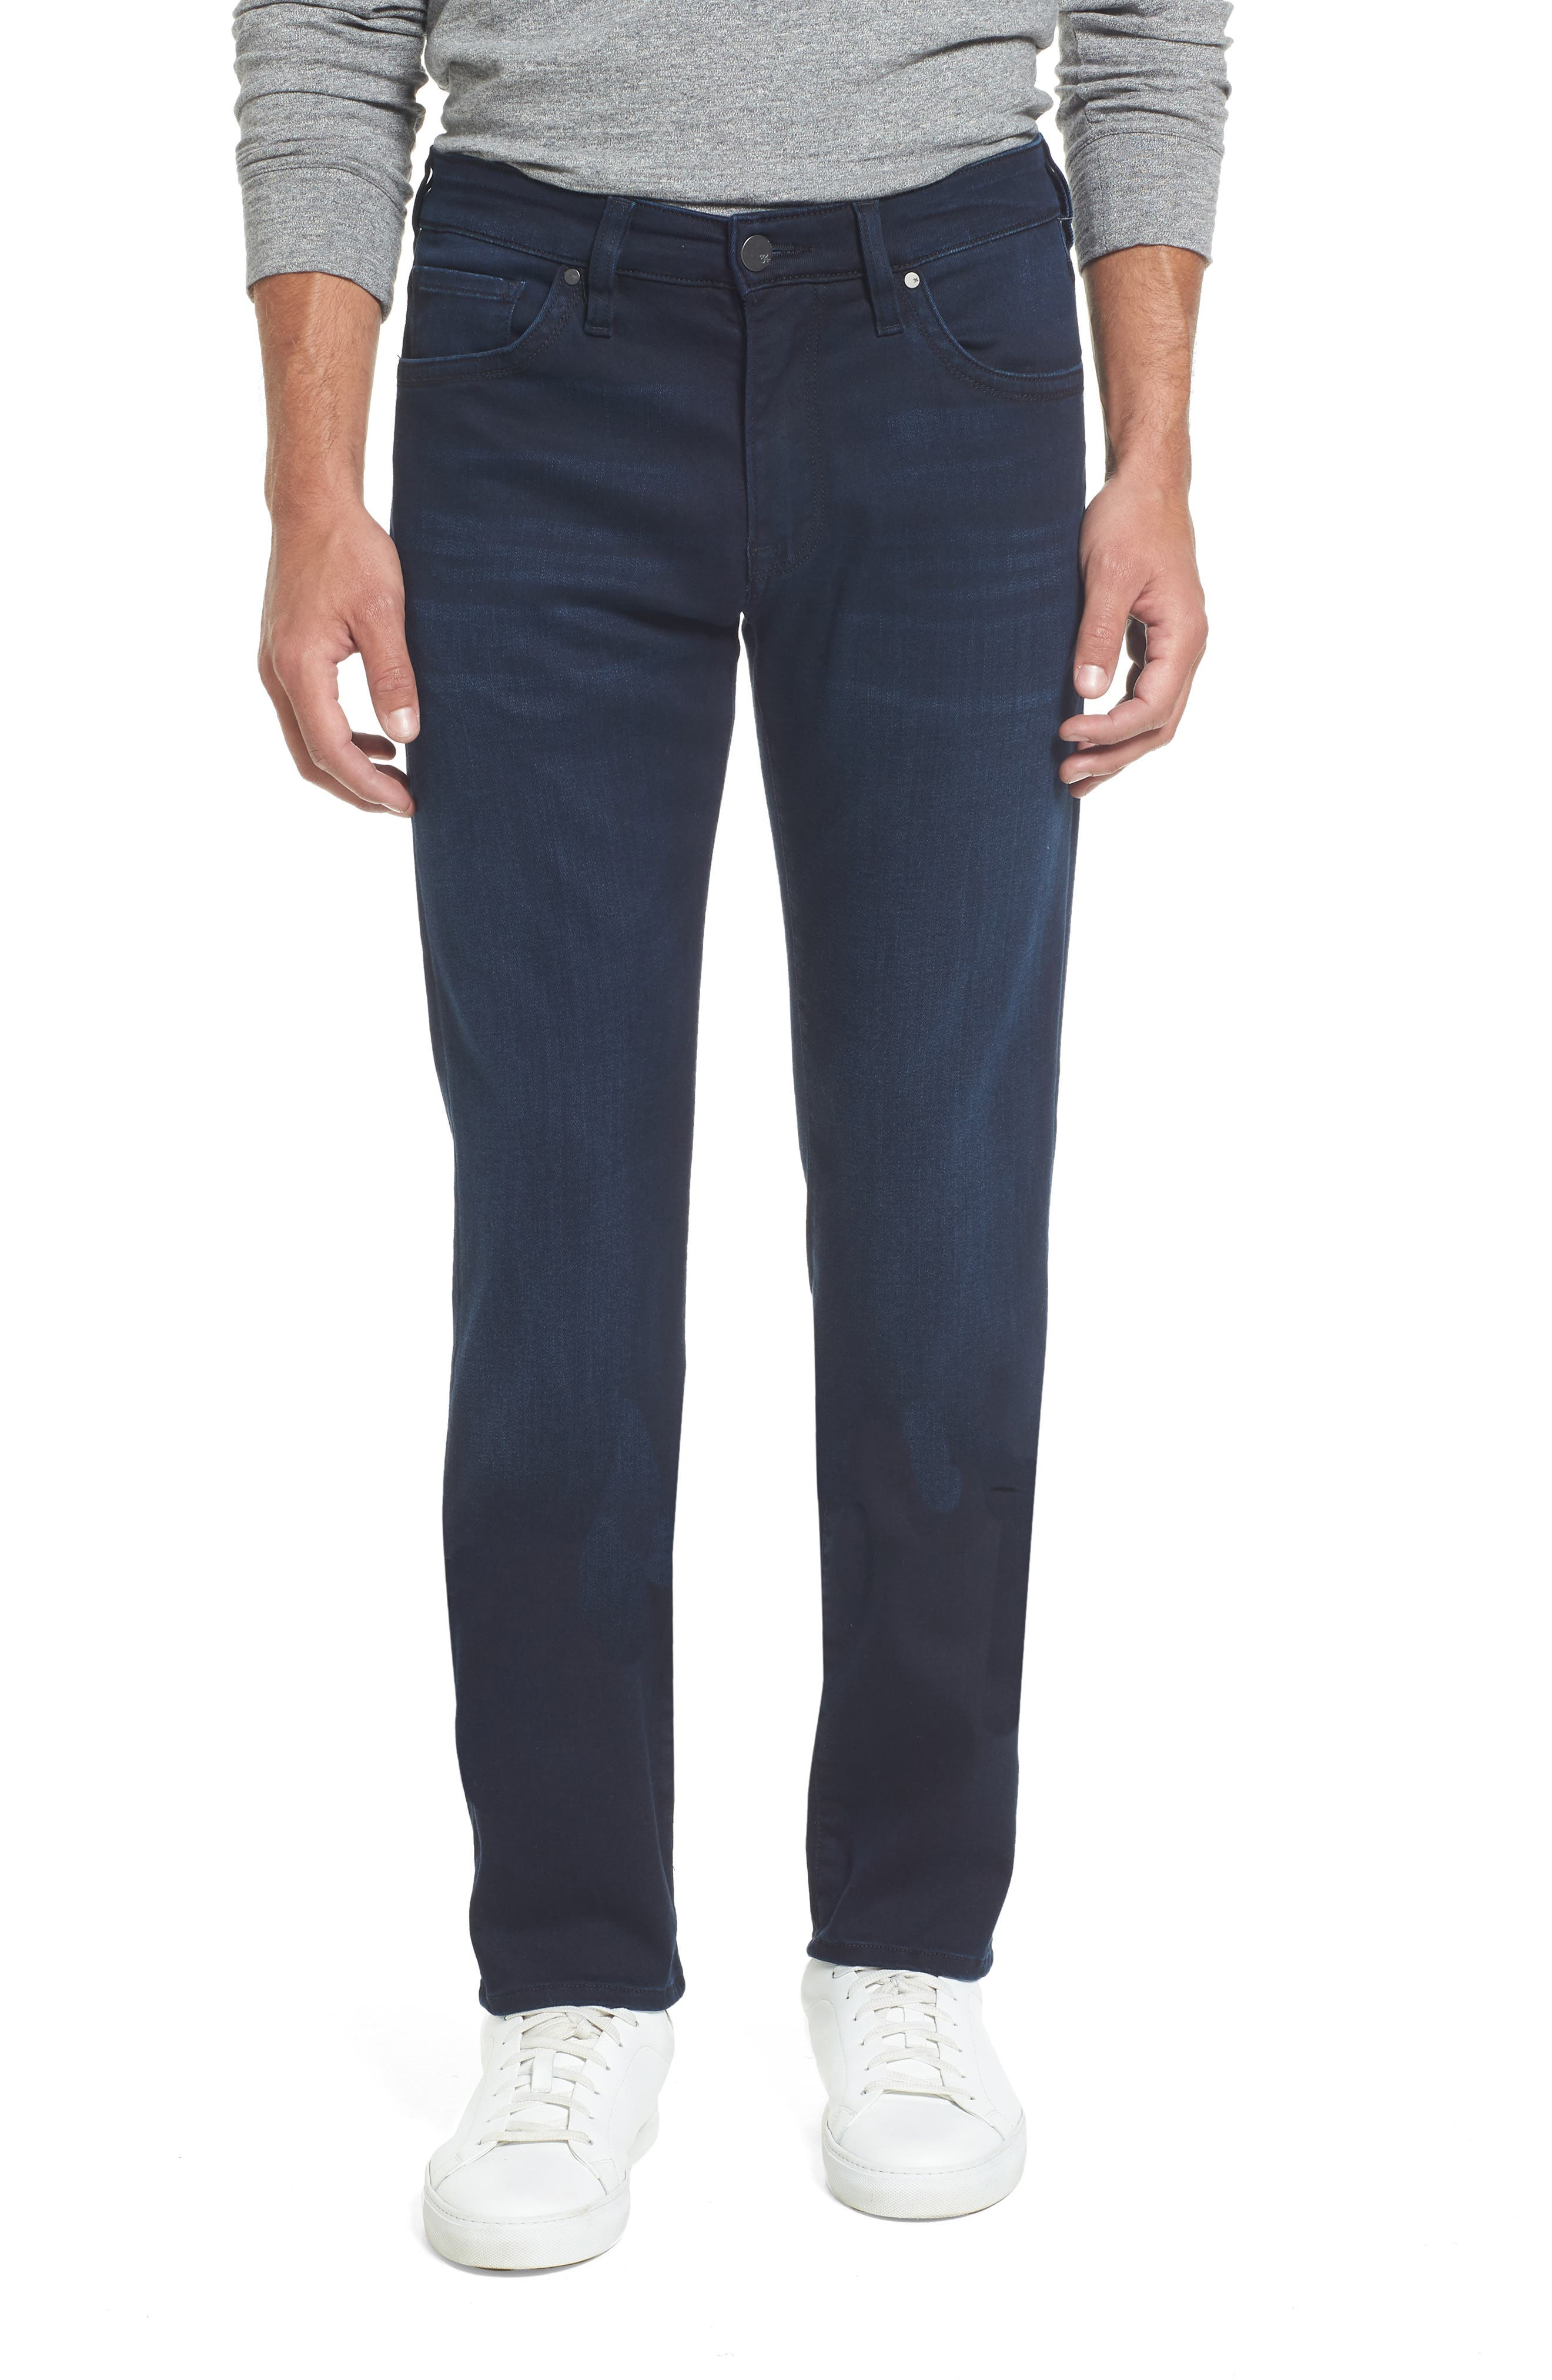 Courage Straight Fit Jeans,                             Main thumbnail 1, color,                             401